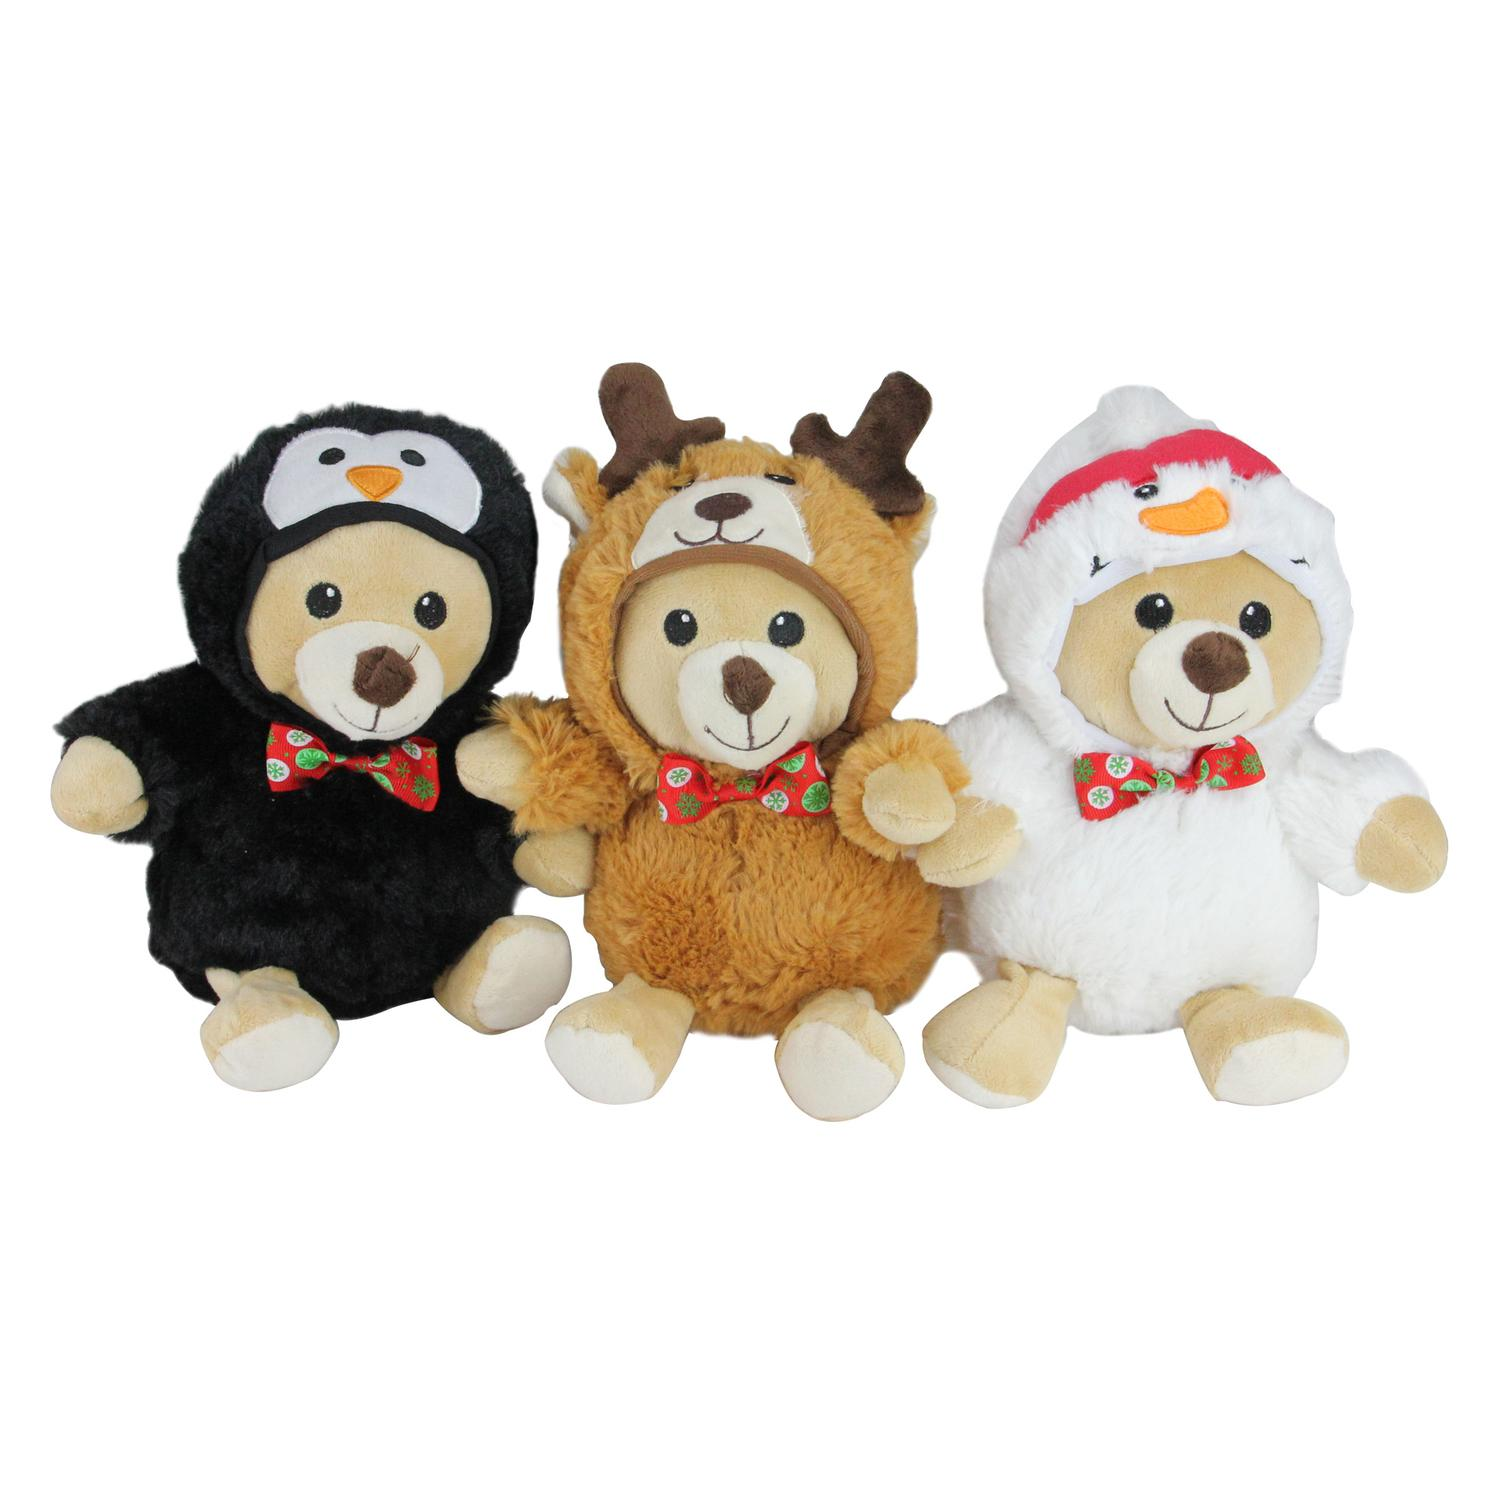 """Set of 3 Plush Teddy Bear Stuffed Animal Figures in Christmas Costumes 8"""" by Northlight"""